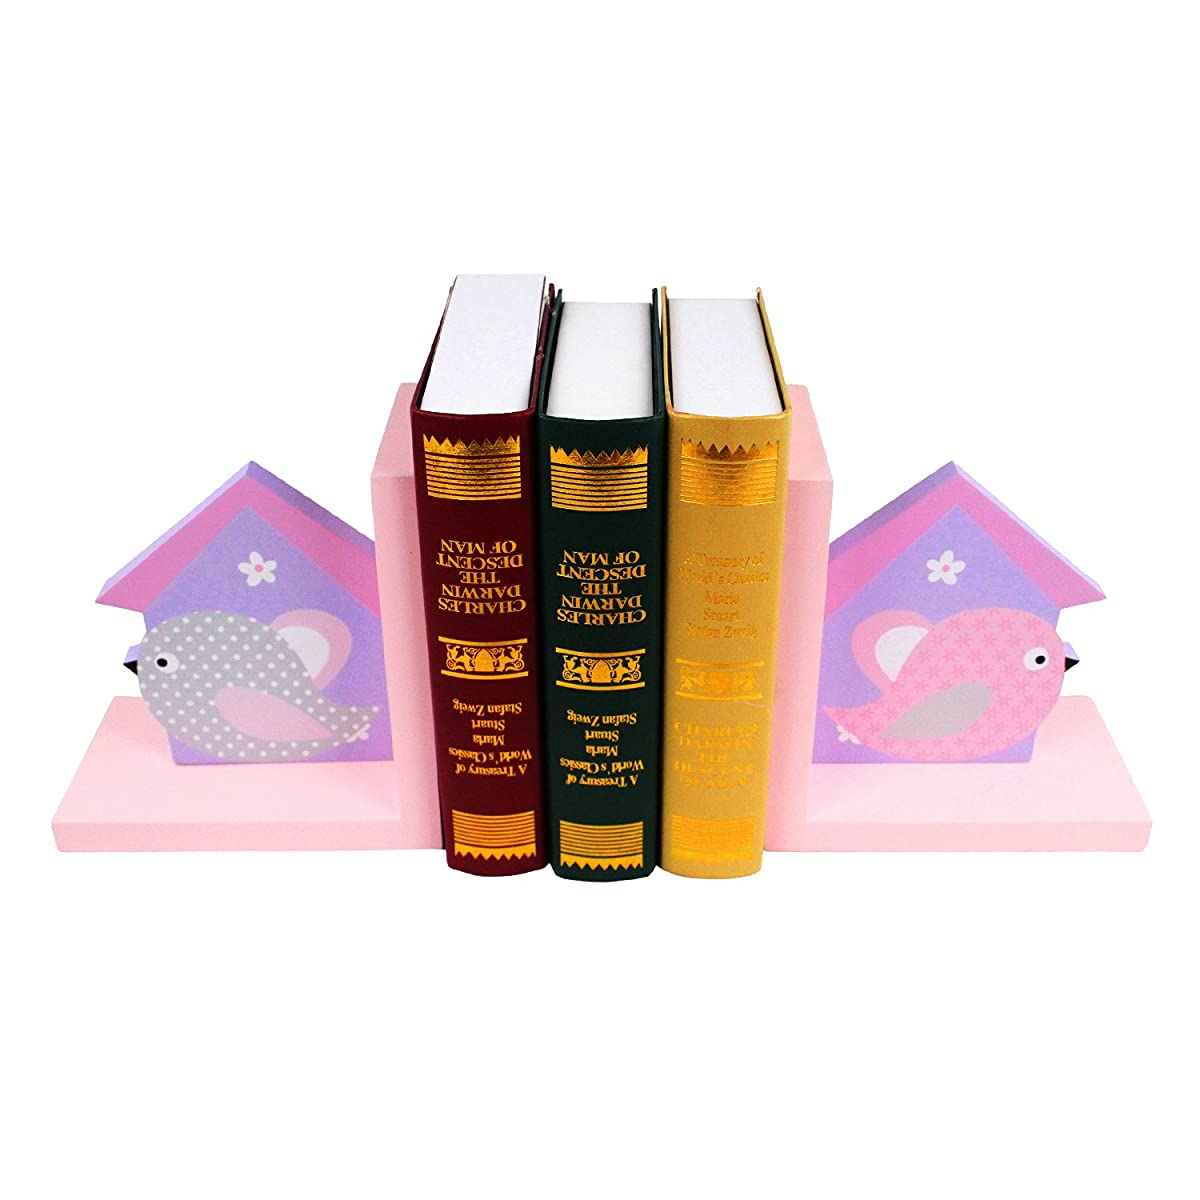 Hoddmimis Set of 2 Wooden Animal Themed Nonskid Bookends for Kids Home Decaration BBE04